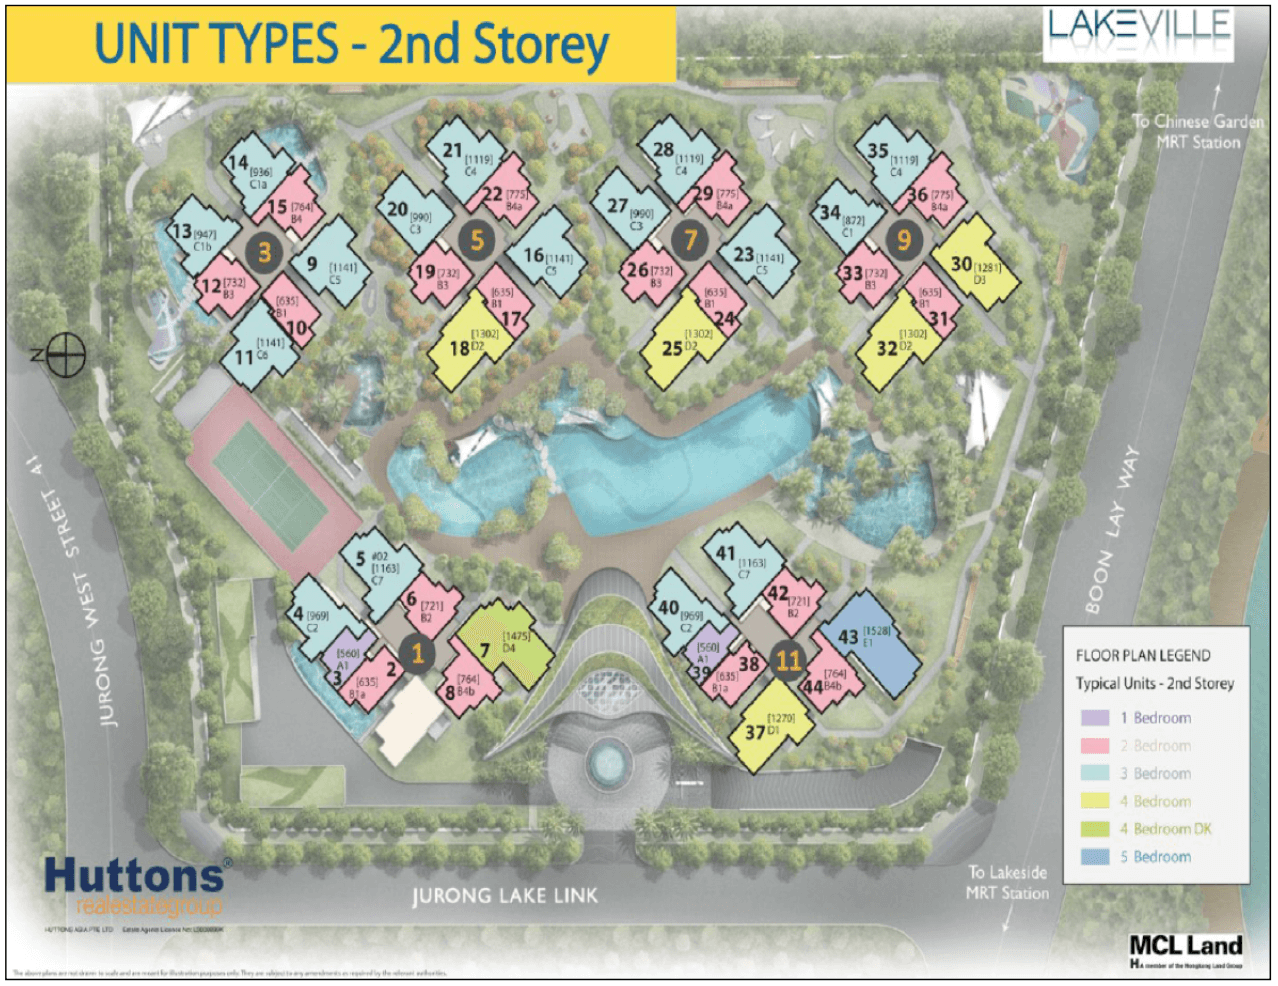 New Condo Launch - LakeVille - Site Plan 2nd Storey